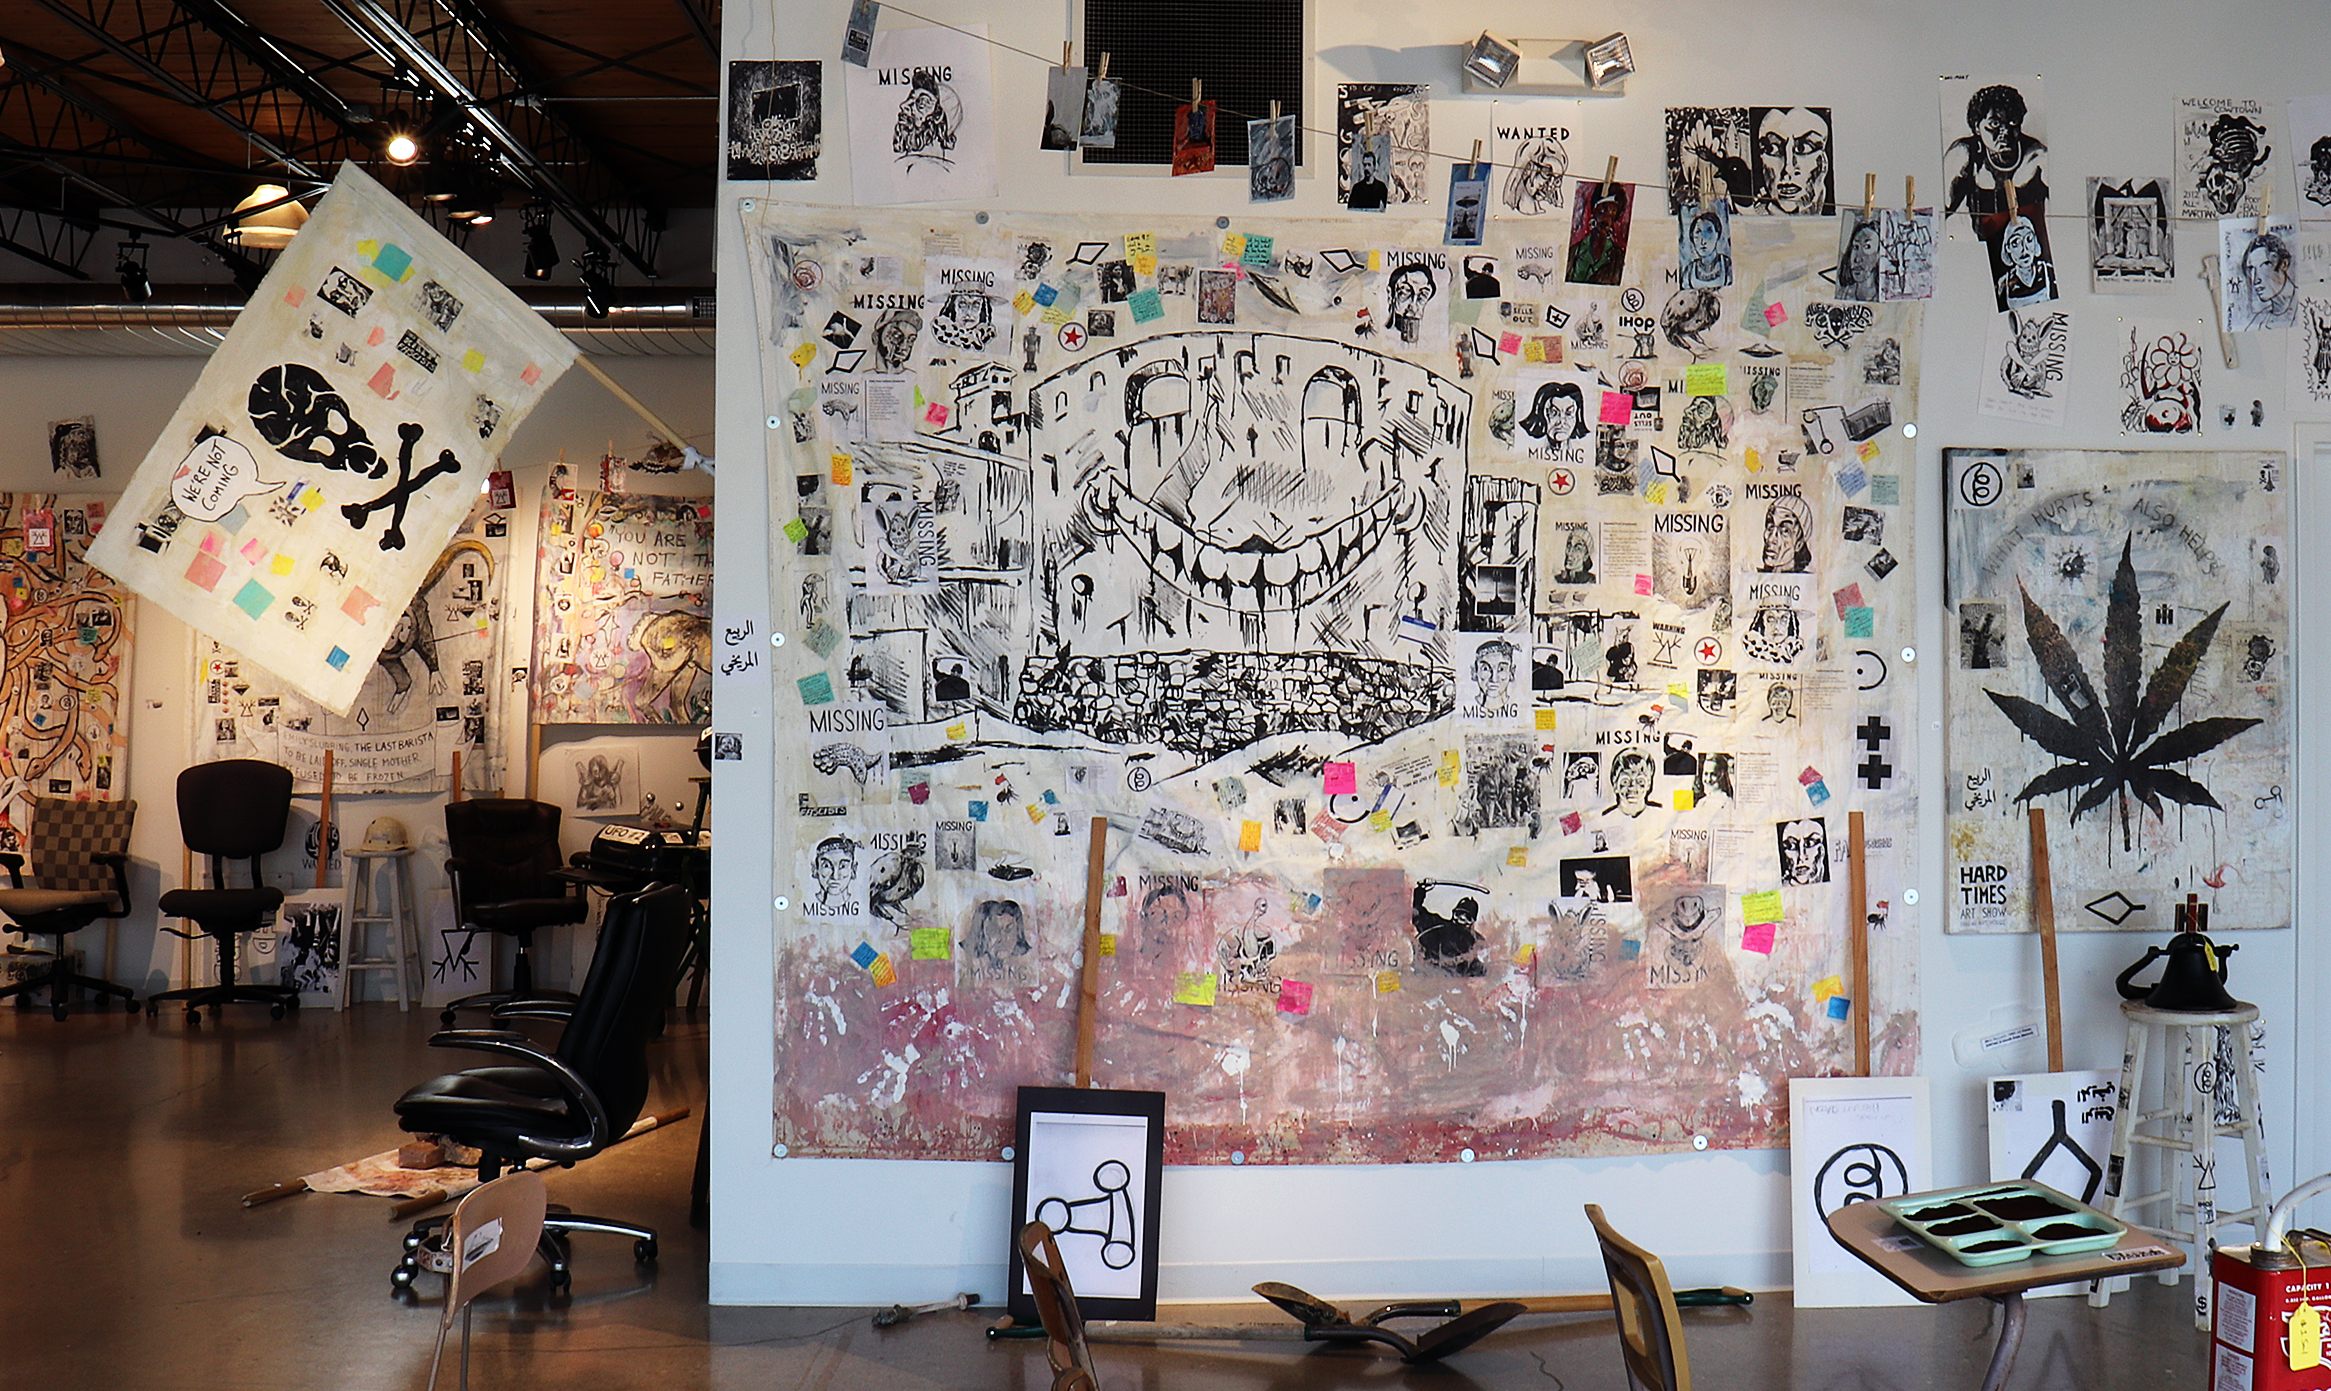 Ohio Erasure Castle (The Barista Who Disappeared)  by Adam Turl. Acrylic, marker, Sharpie, clay slip, photocopies, stickers, post-it notes, coffee and mixed media on canvas tarp.Also in foreground,  What Hurts Also Helps  (left) and  Alien Space Pirates Flag  (right).